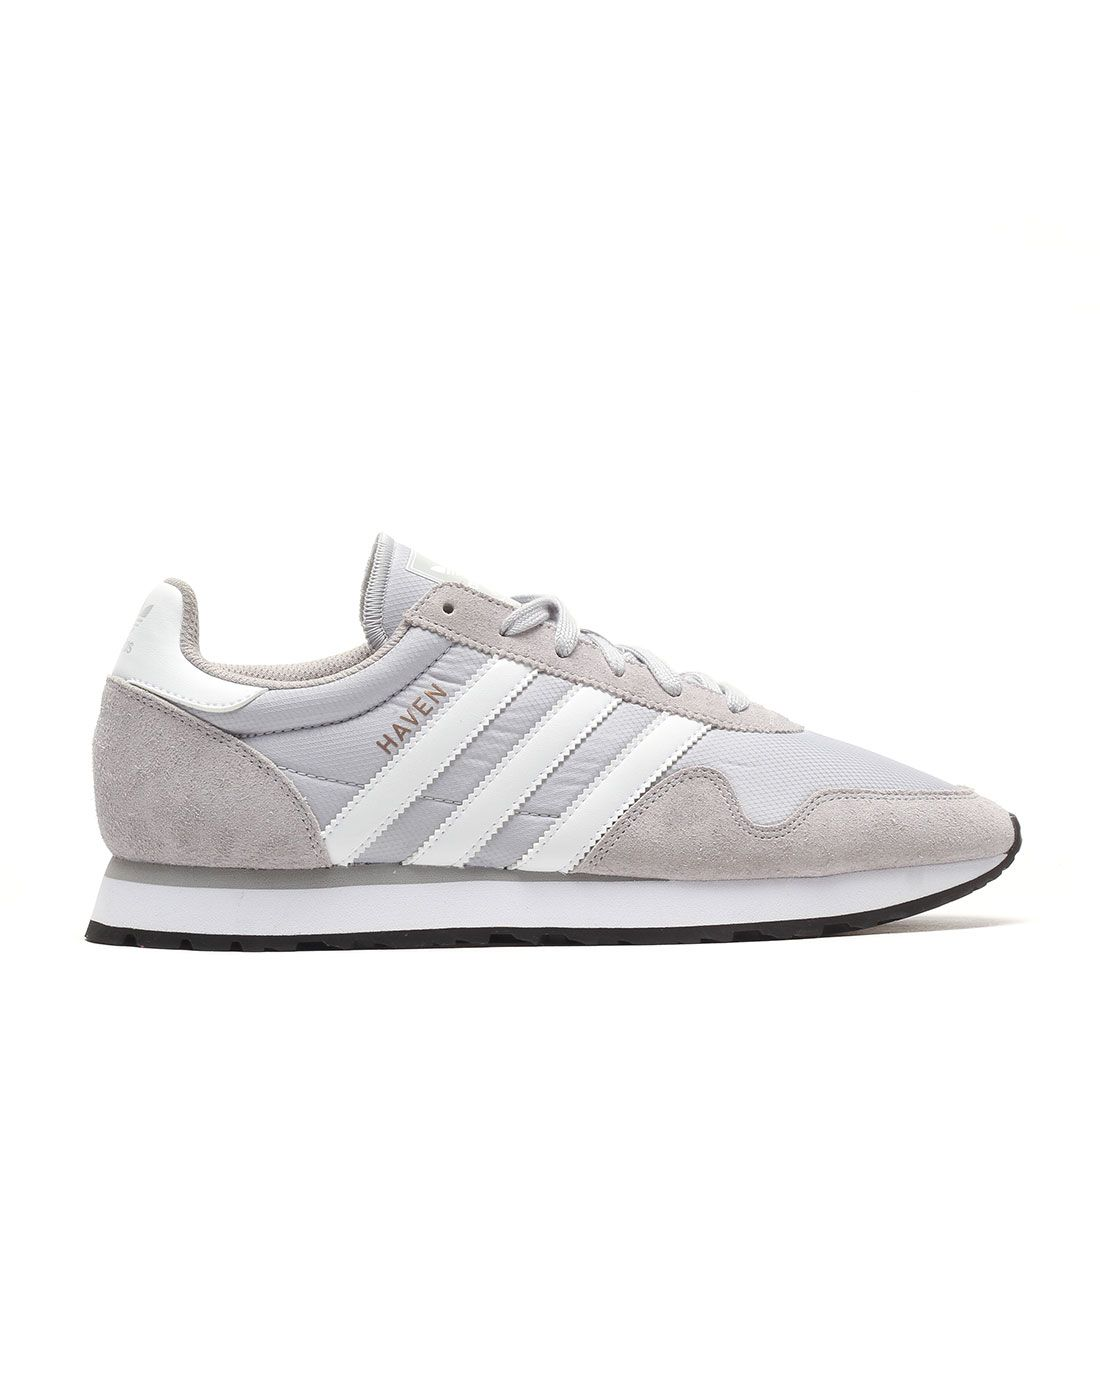 adidas Haven (d grijs) | Adidas, Sneakers, Adidas sneakers